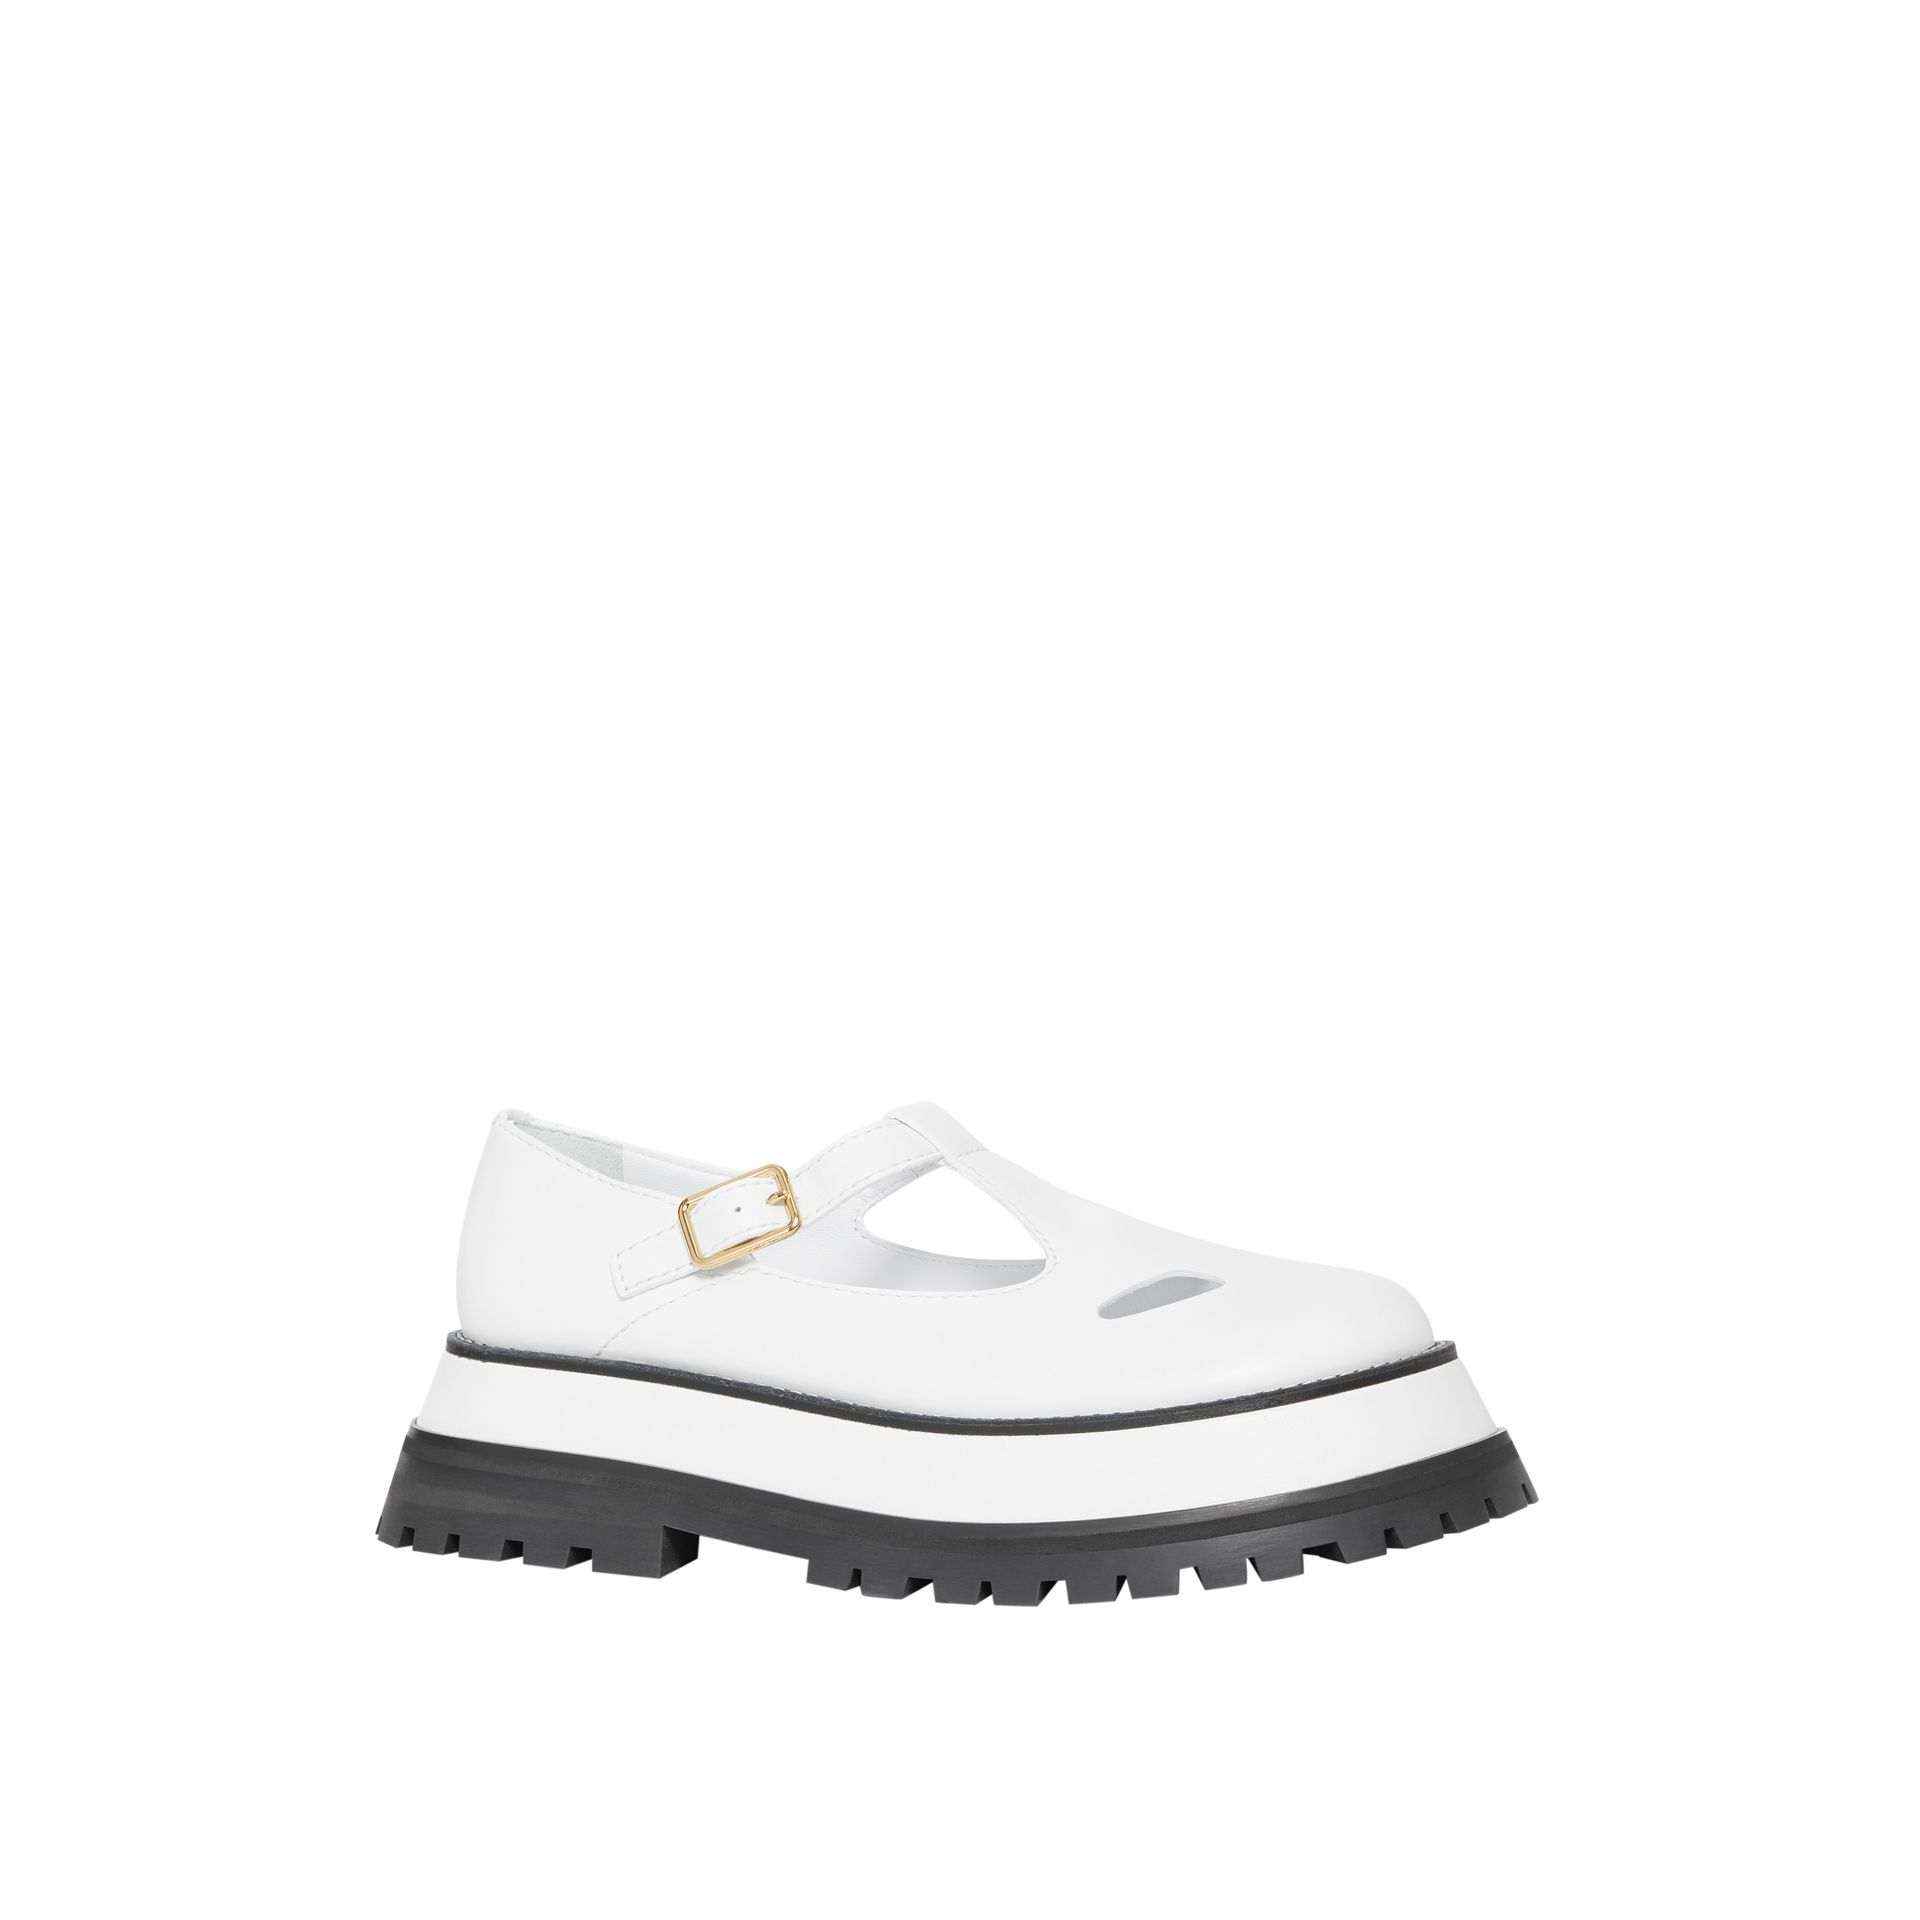 Leather T-bar Shoes in Optic White - Women | Burberry United Kingdom - gallery image 6